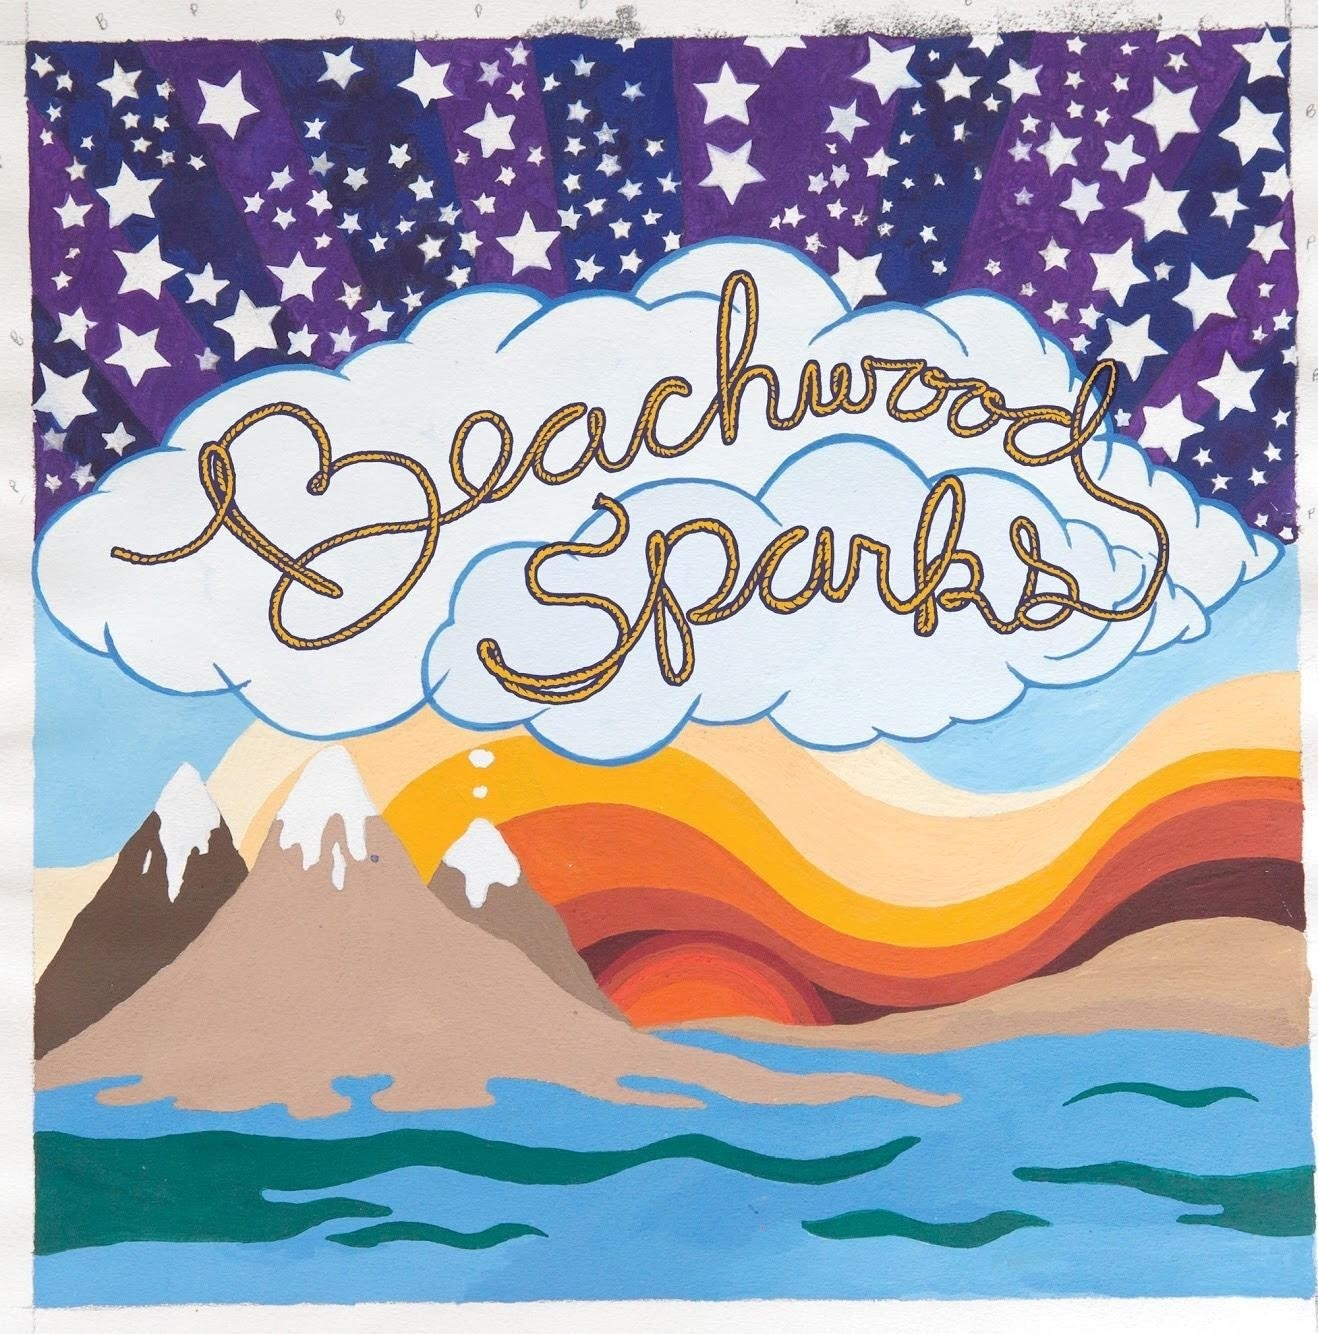 Beachwood Sparks - Beachwood Sparks - 20th Anniversary Ltd Edt